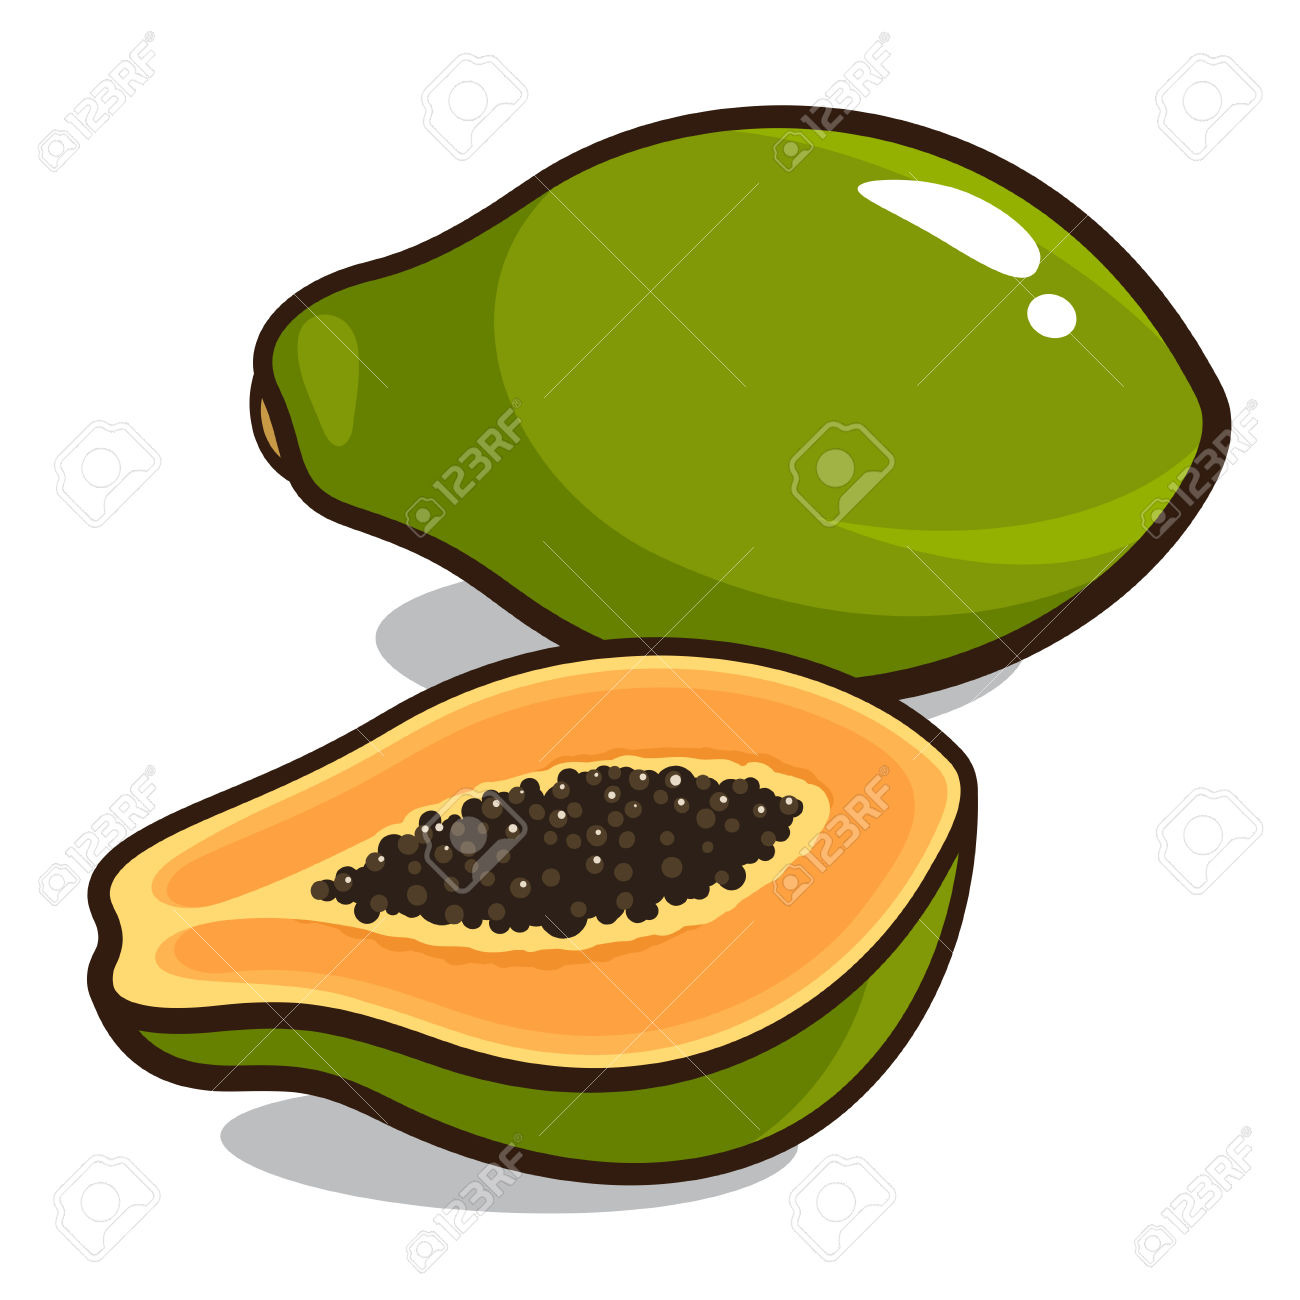 3,105 Papaya Cliparts, Stock Vector And Royalty Free Papaya.